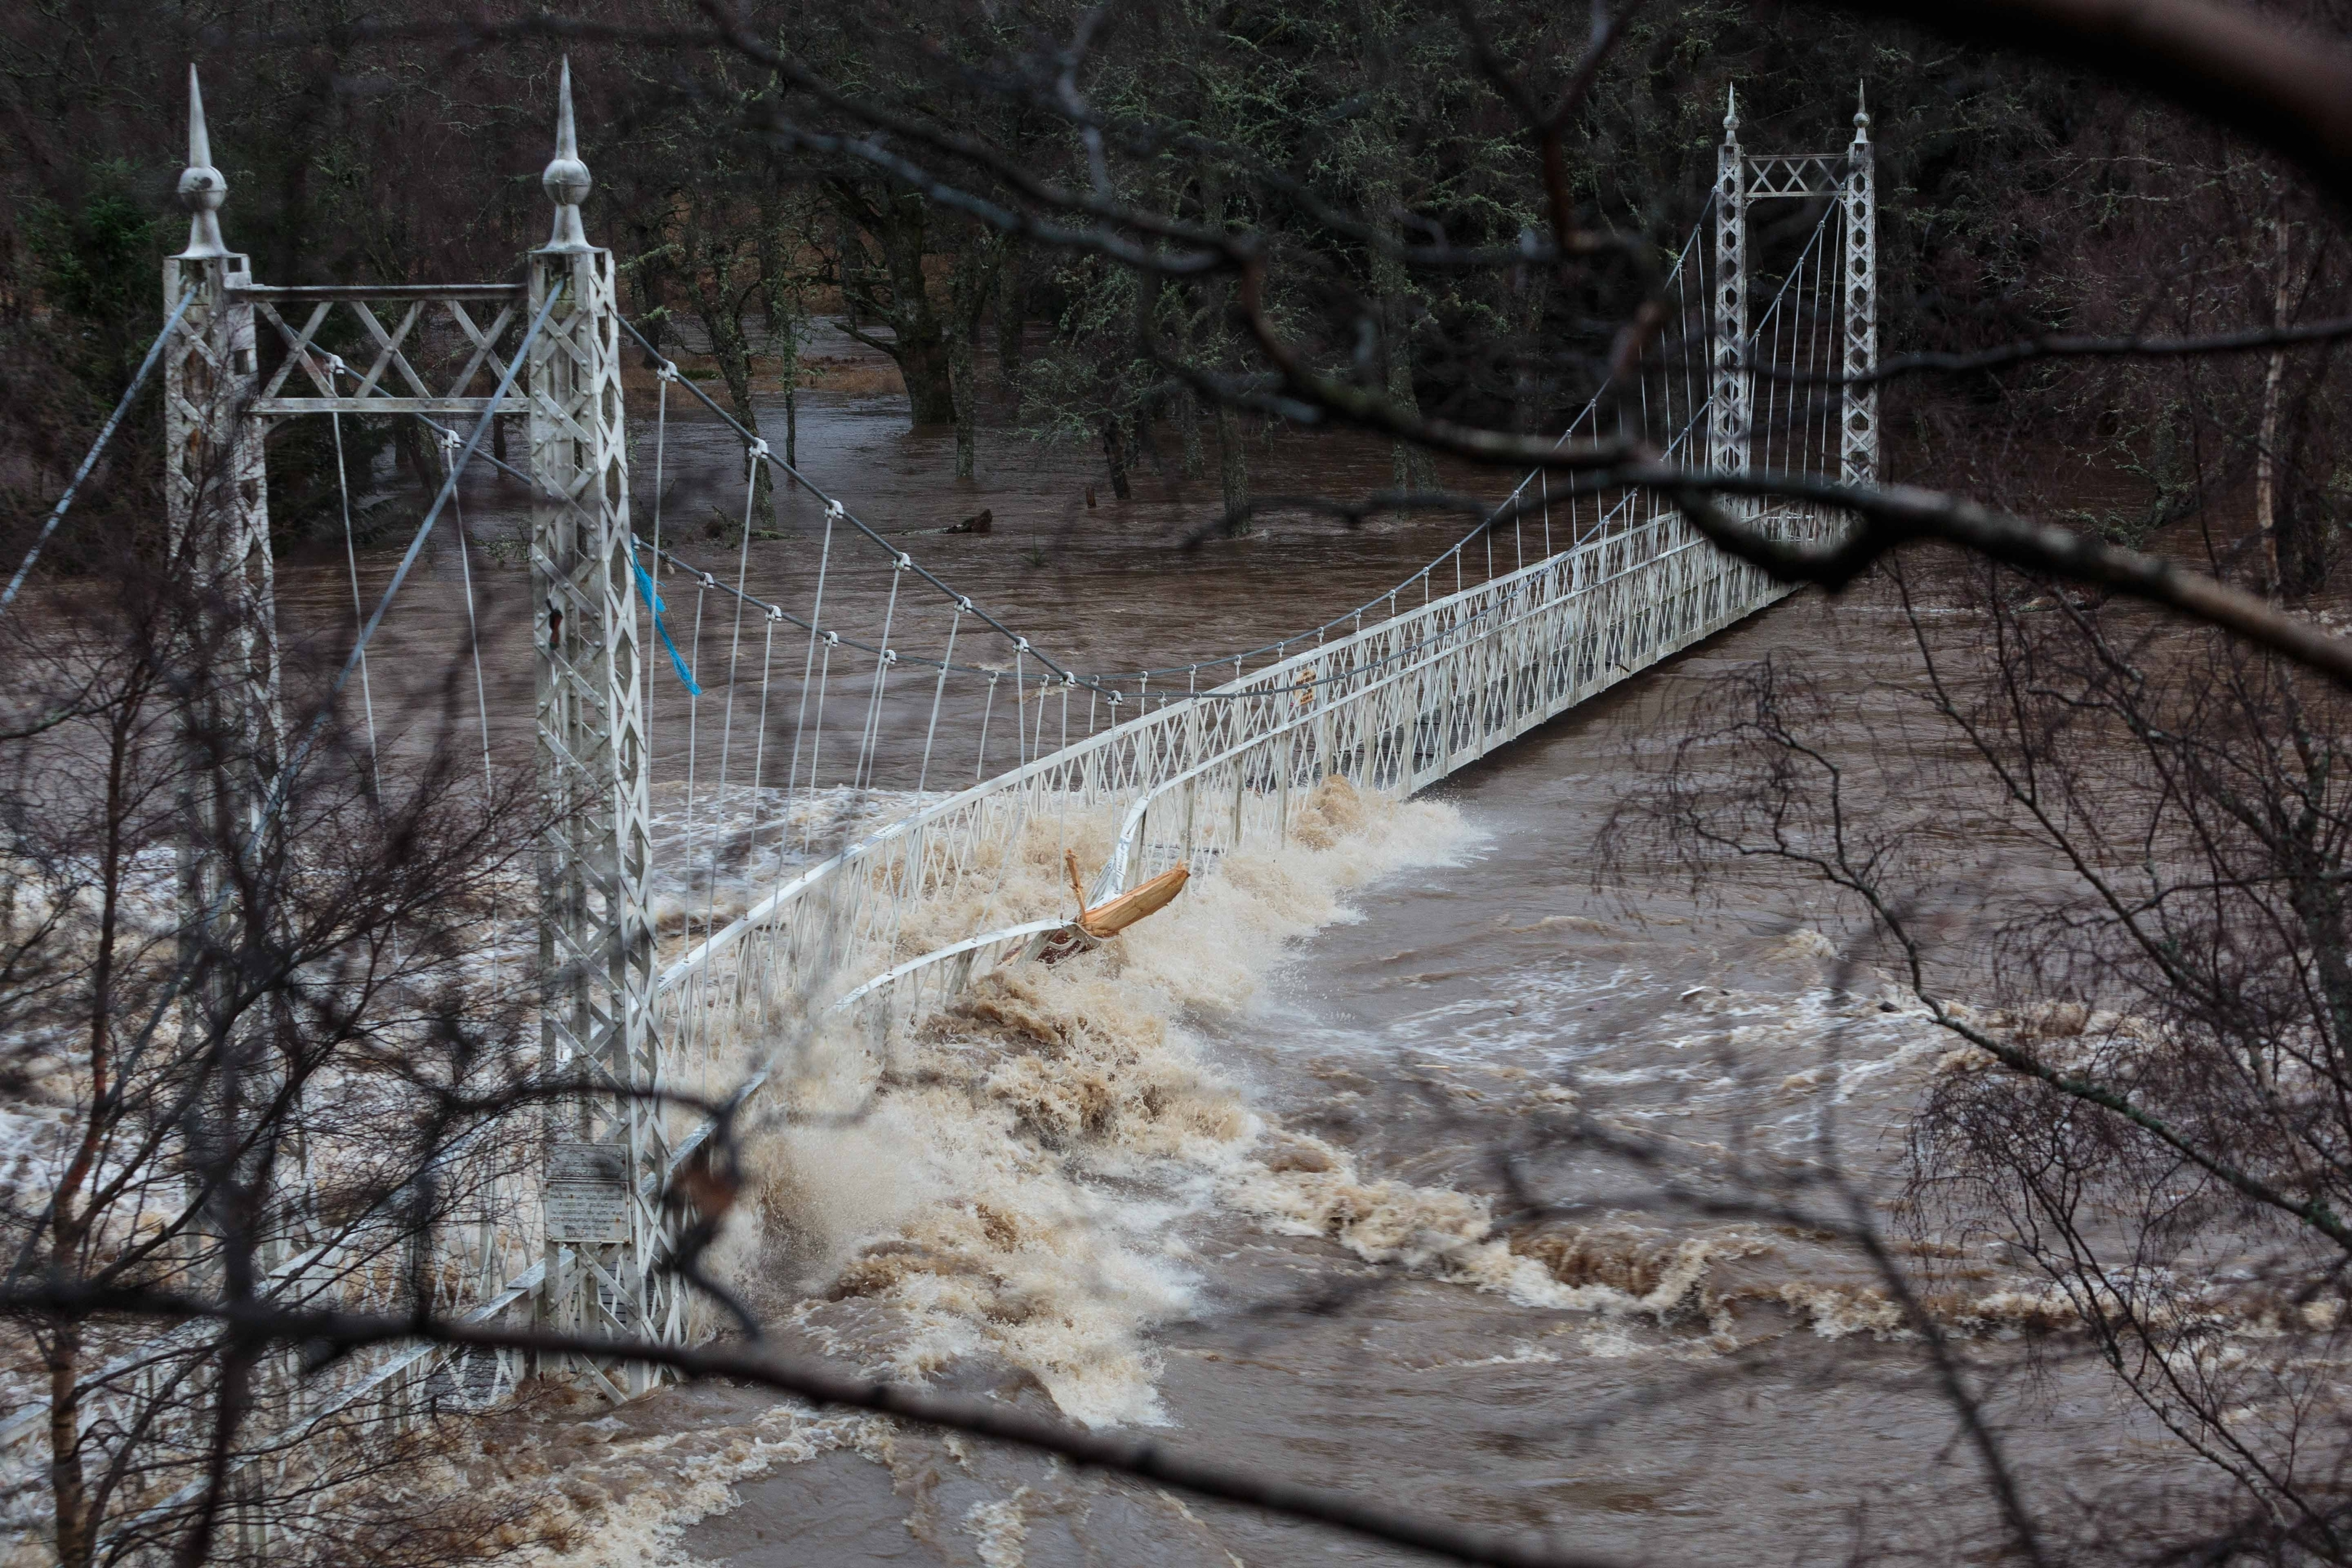 Thousands of homes in Scotland have been left without power as Storm Frank sweeps the country bringing heavy rain and gale-force winds. Pictured: The Cambus O'May footbridge over the River Dee